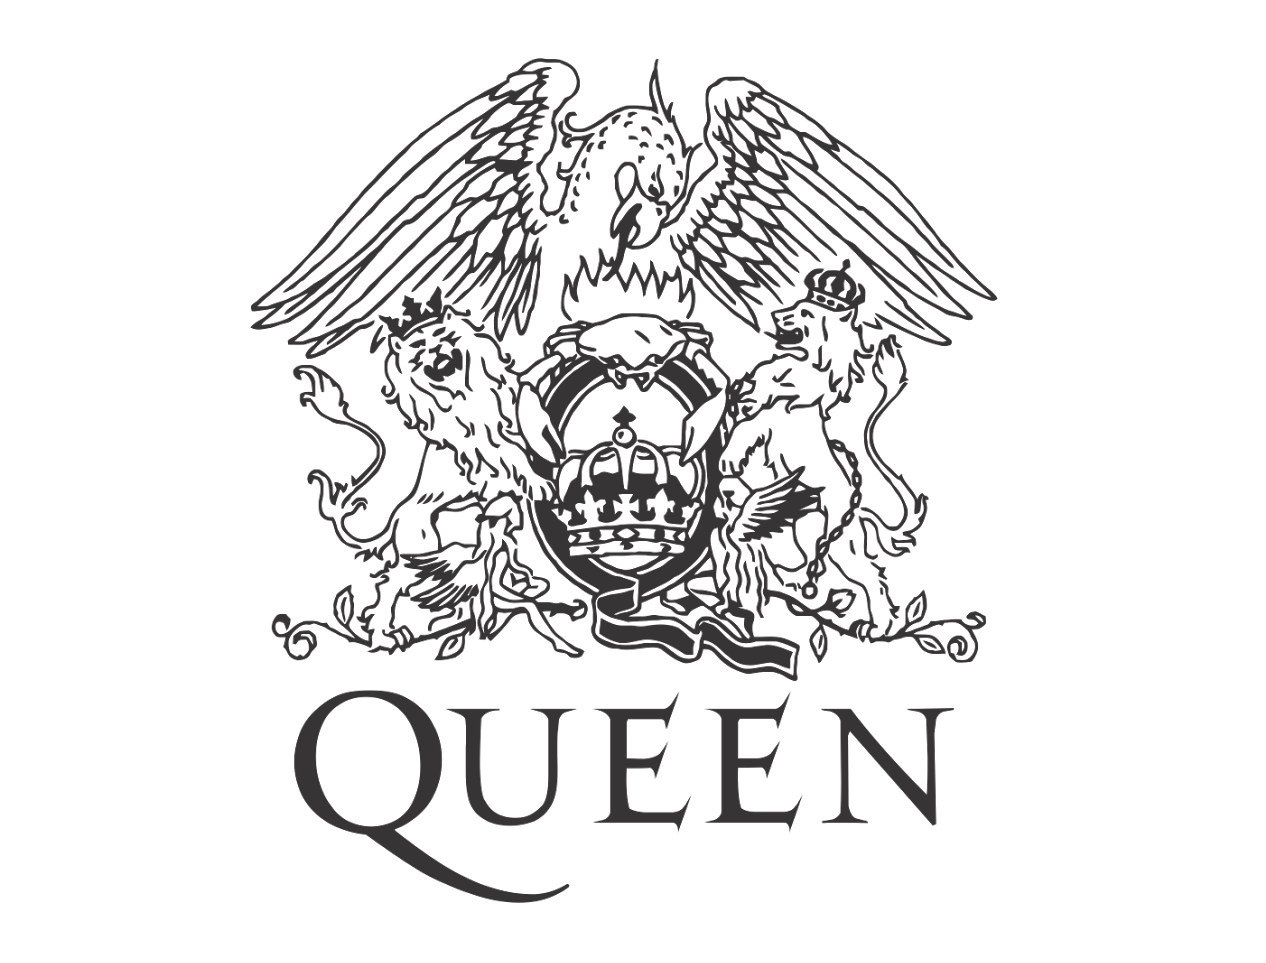 Queen clipart logo. Esprit pinterest queens